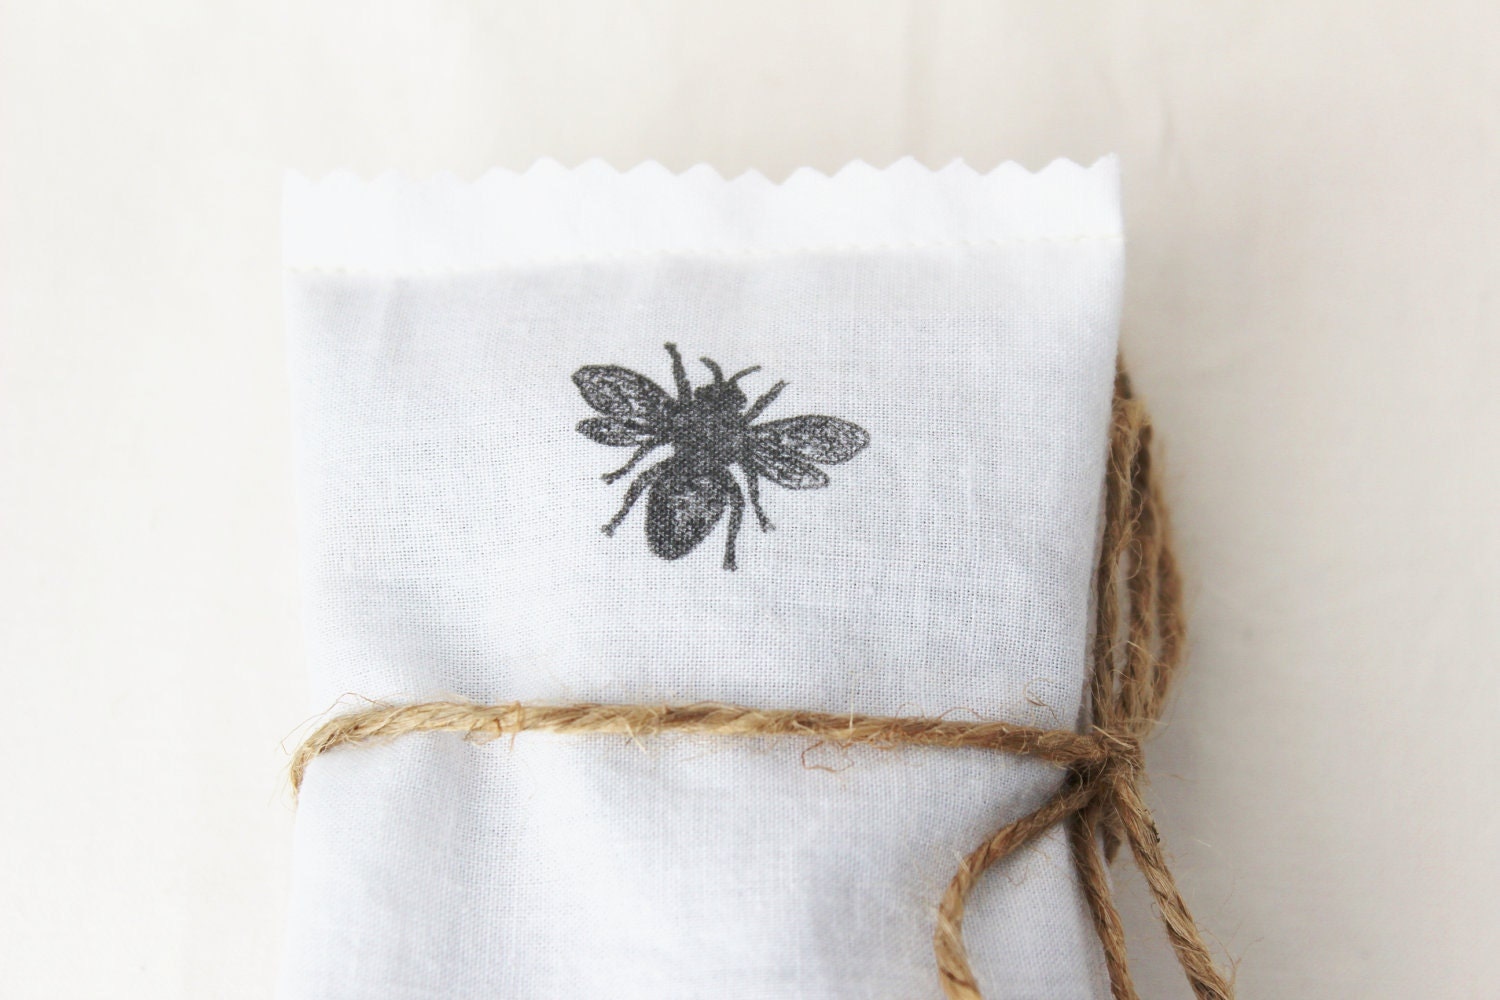 Lavender Dryer Bags, Organic Laundry, Honey Bees, Natural History